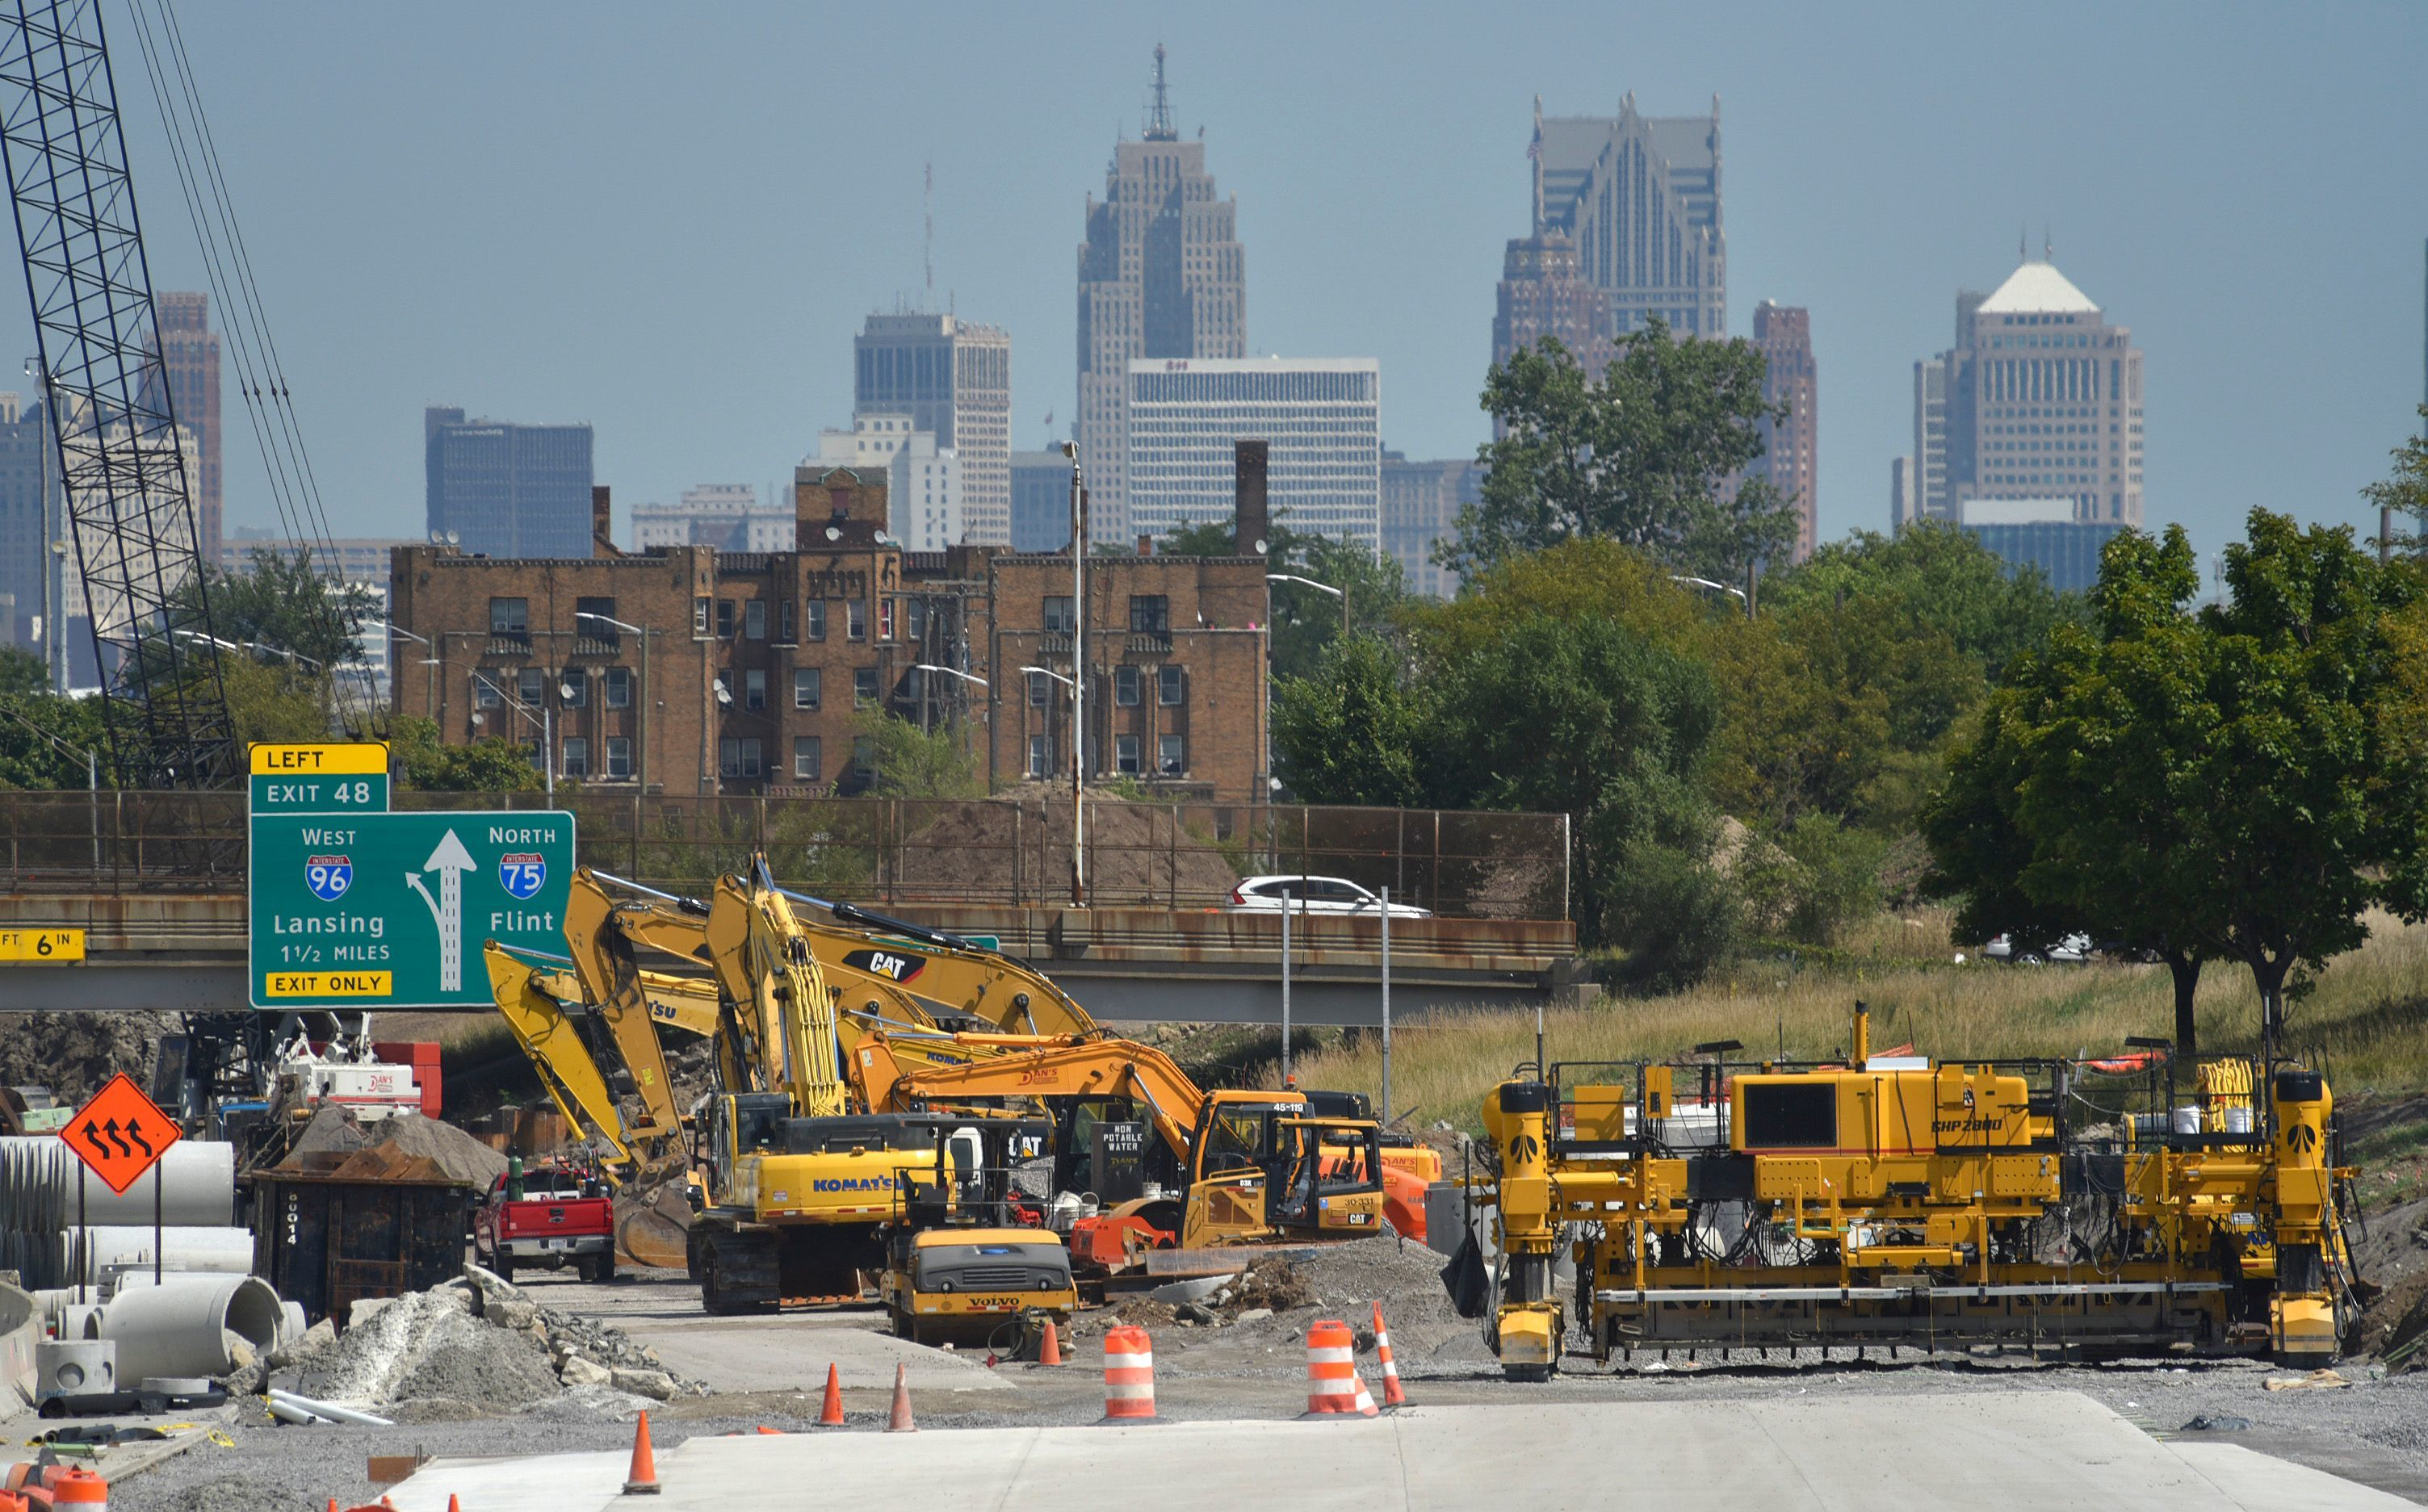 Road construction equipment sets idle on Northbound I-75 at Exit 46 as traffic crosses the Livernois bridge over the interstate, Tuesday afternoon, September 4, 2018, after a contractors association made good on its word to lock out unionized road builders because of stalled labor negotiations.